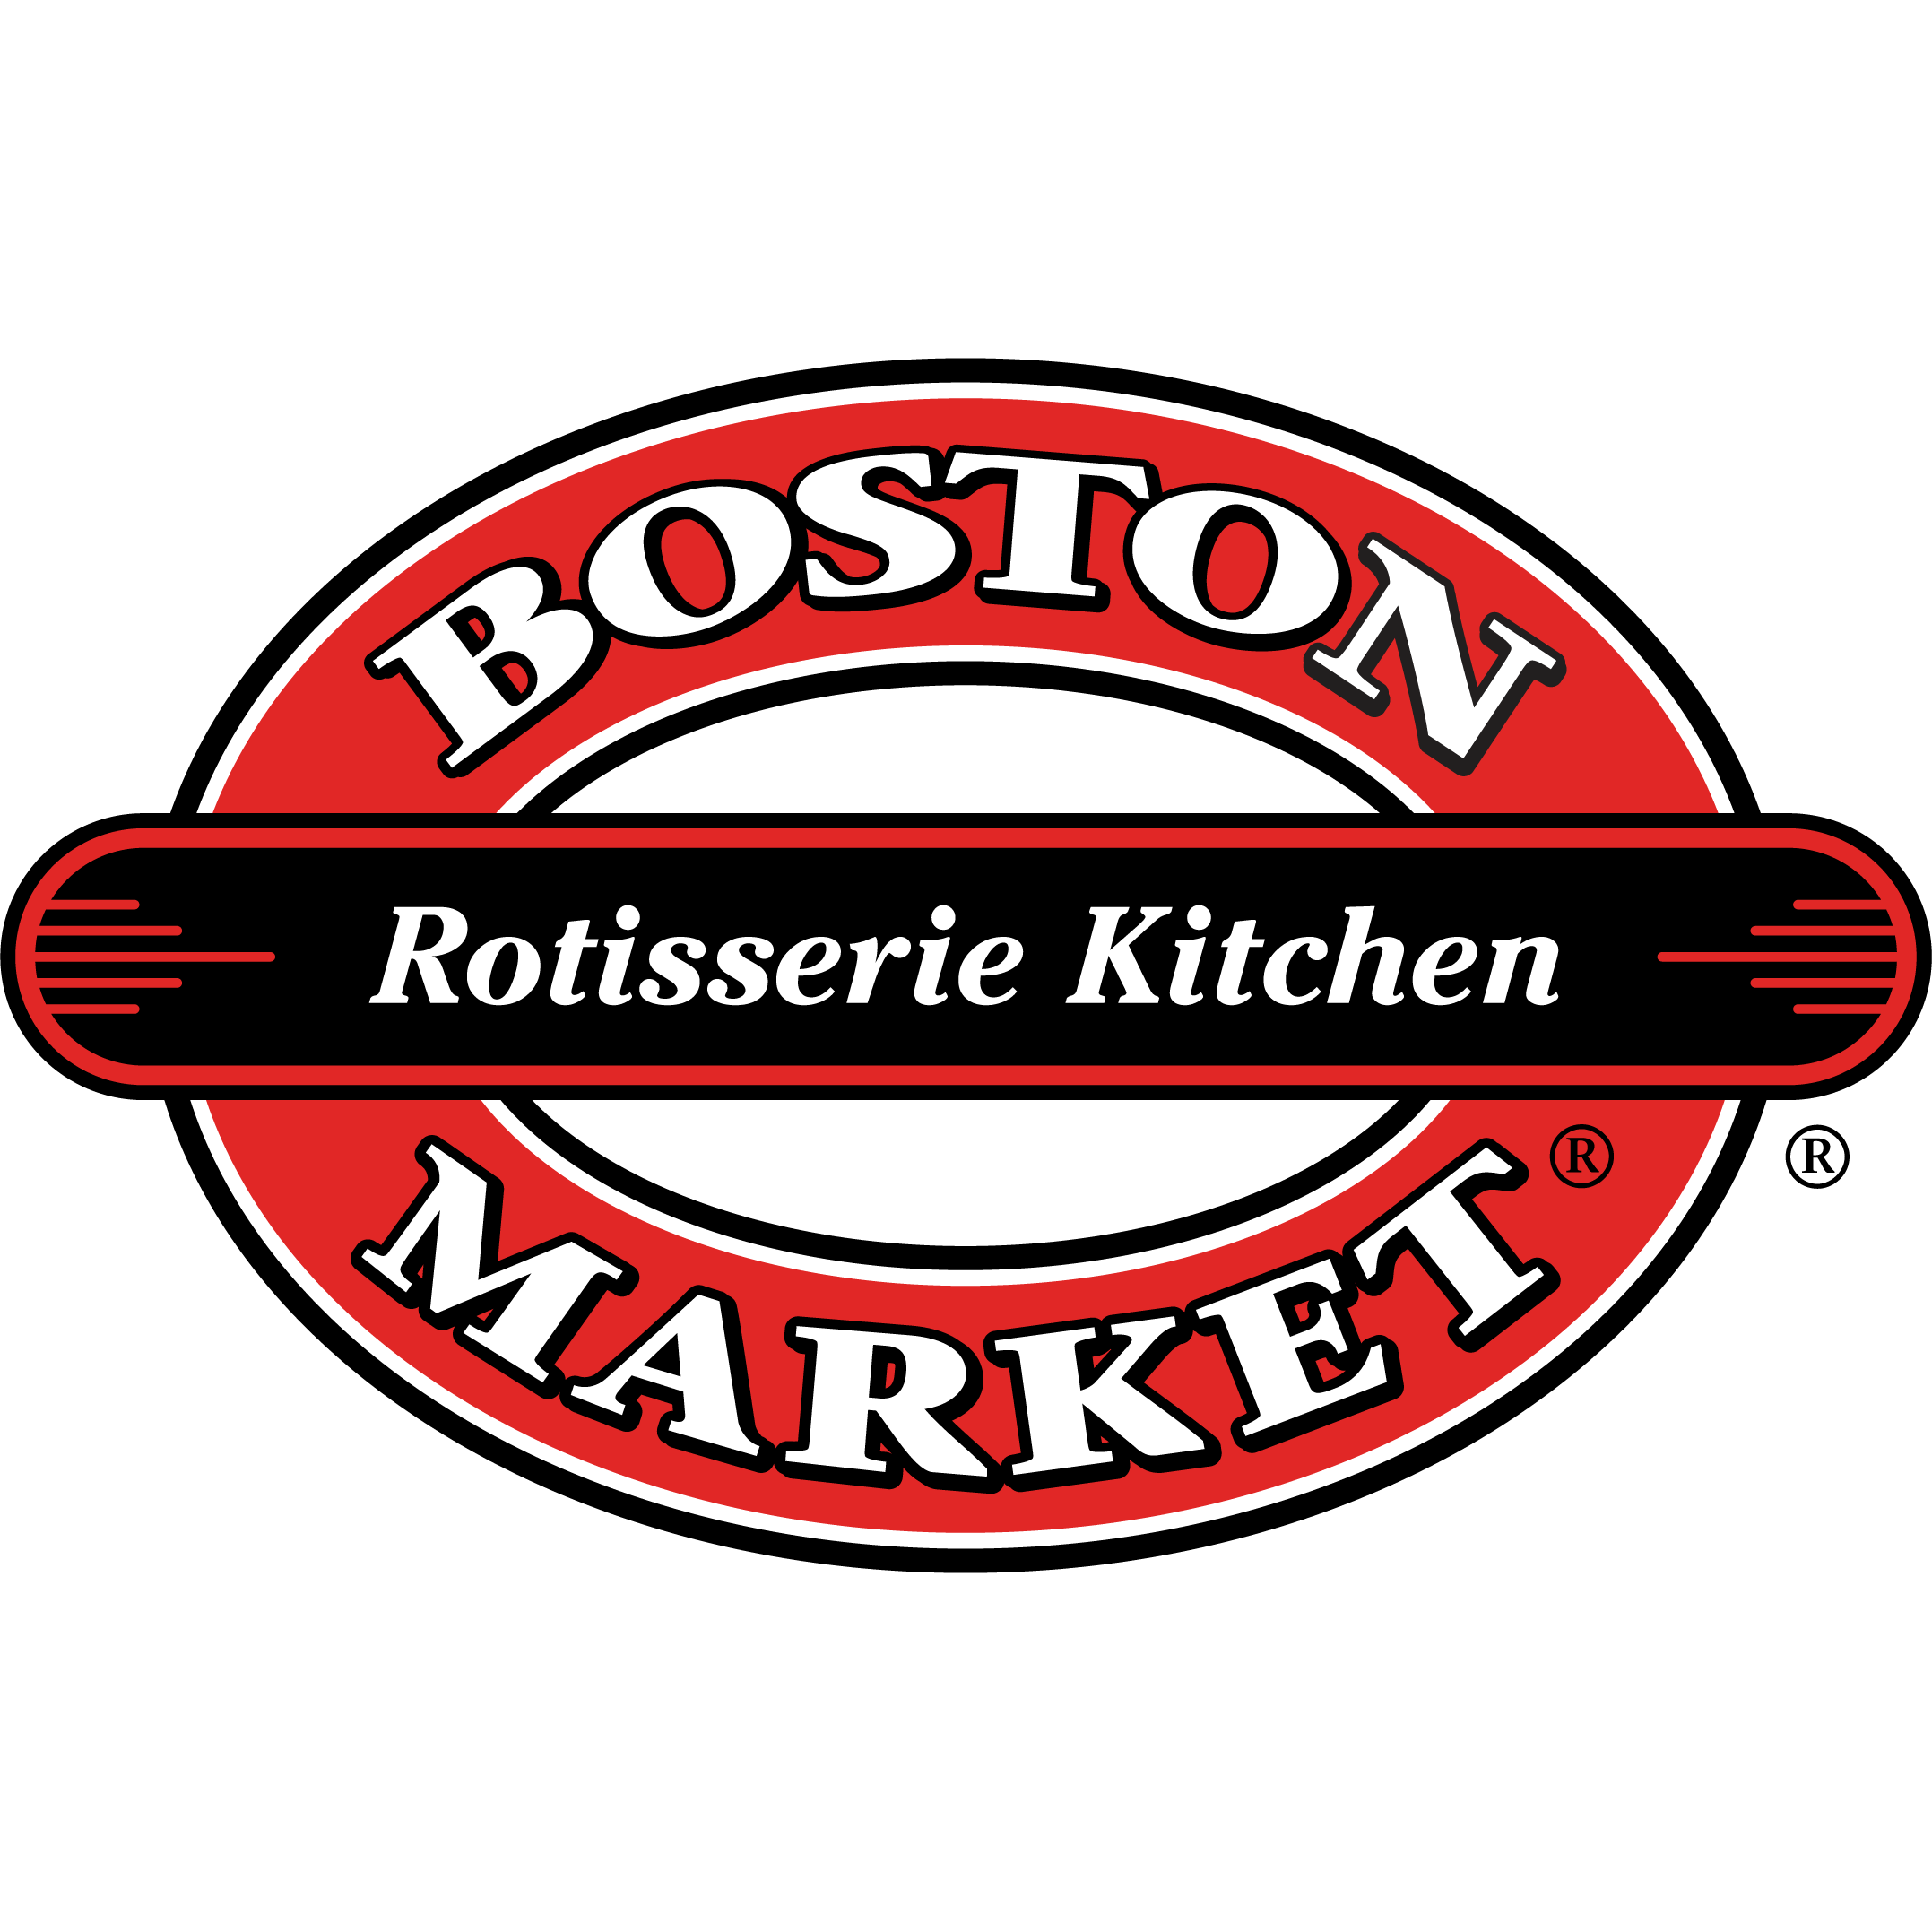 image of the Boston Market